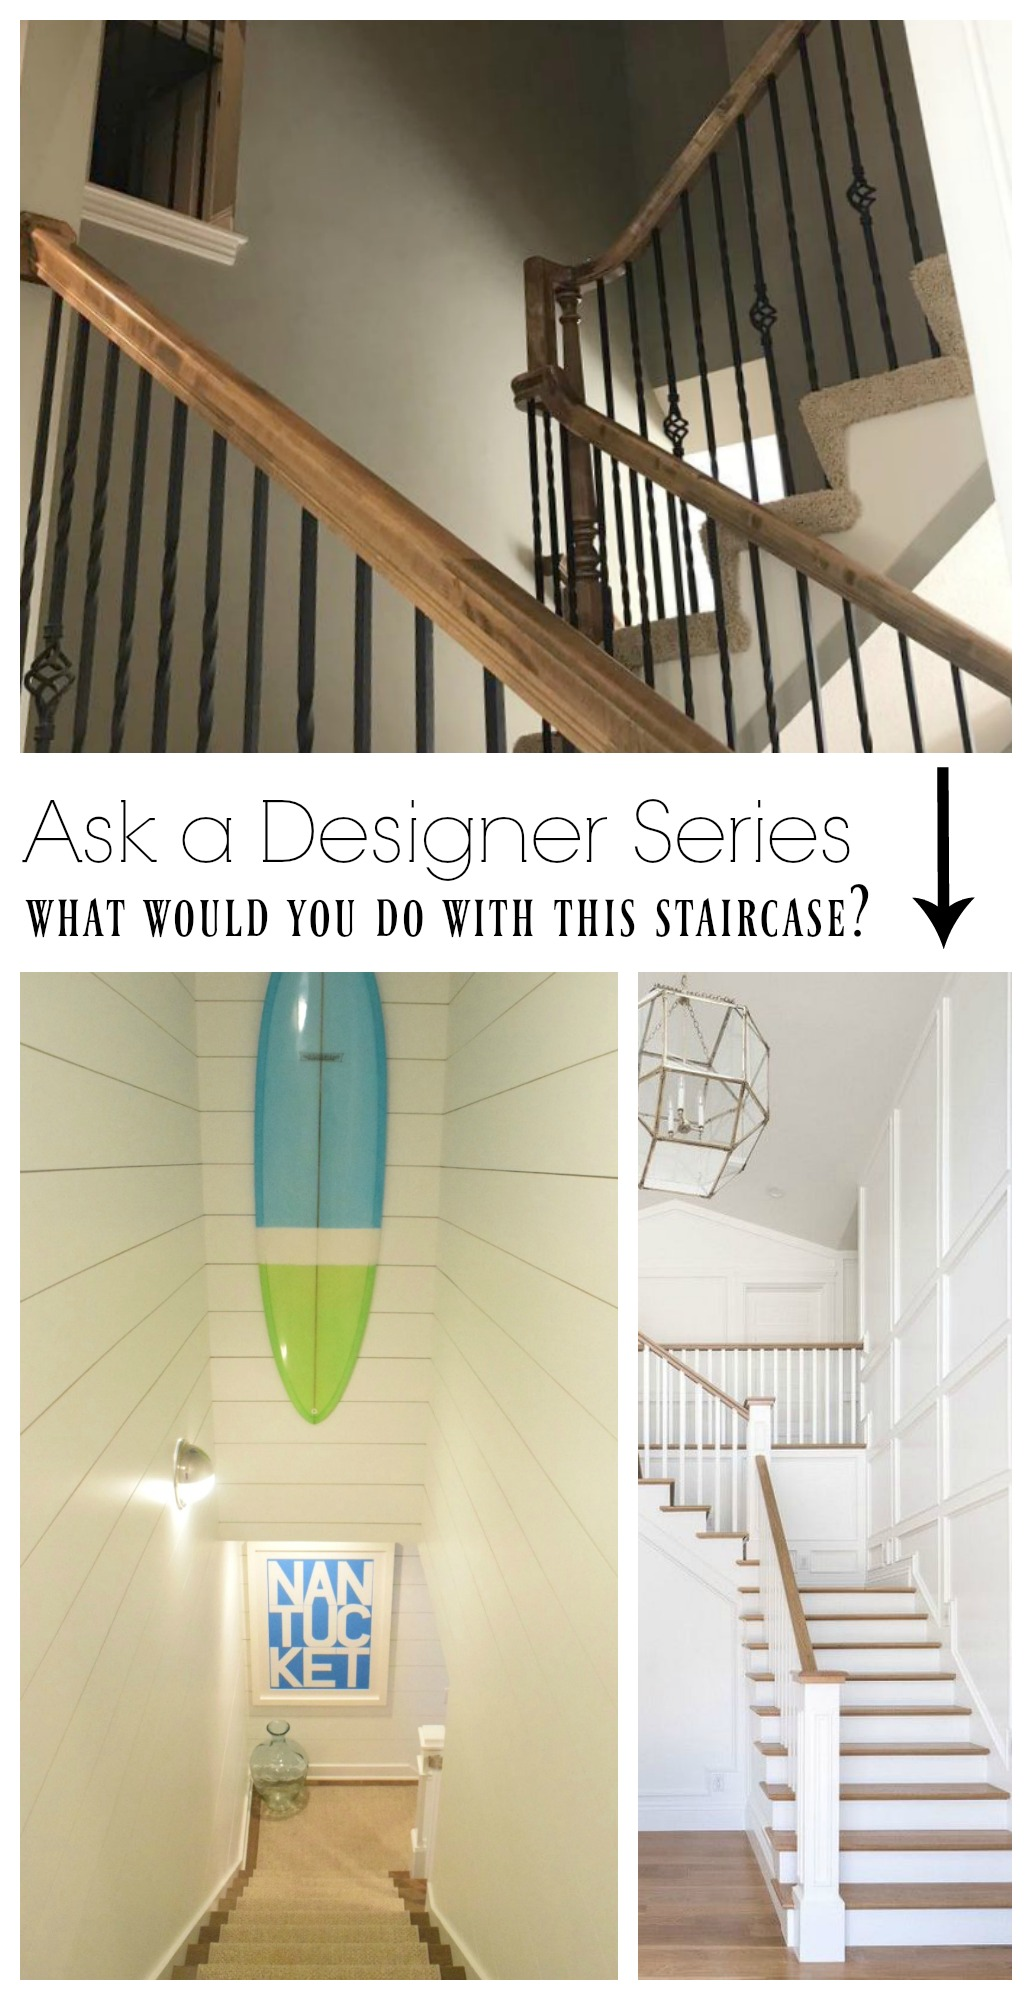 Ask a Designer Series- What would you do with this staircase?